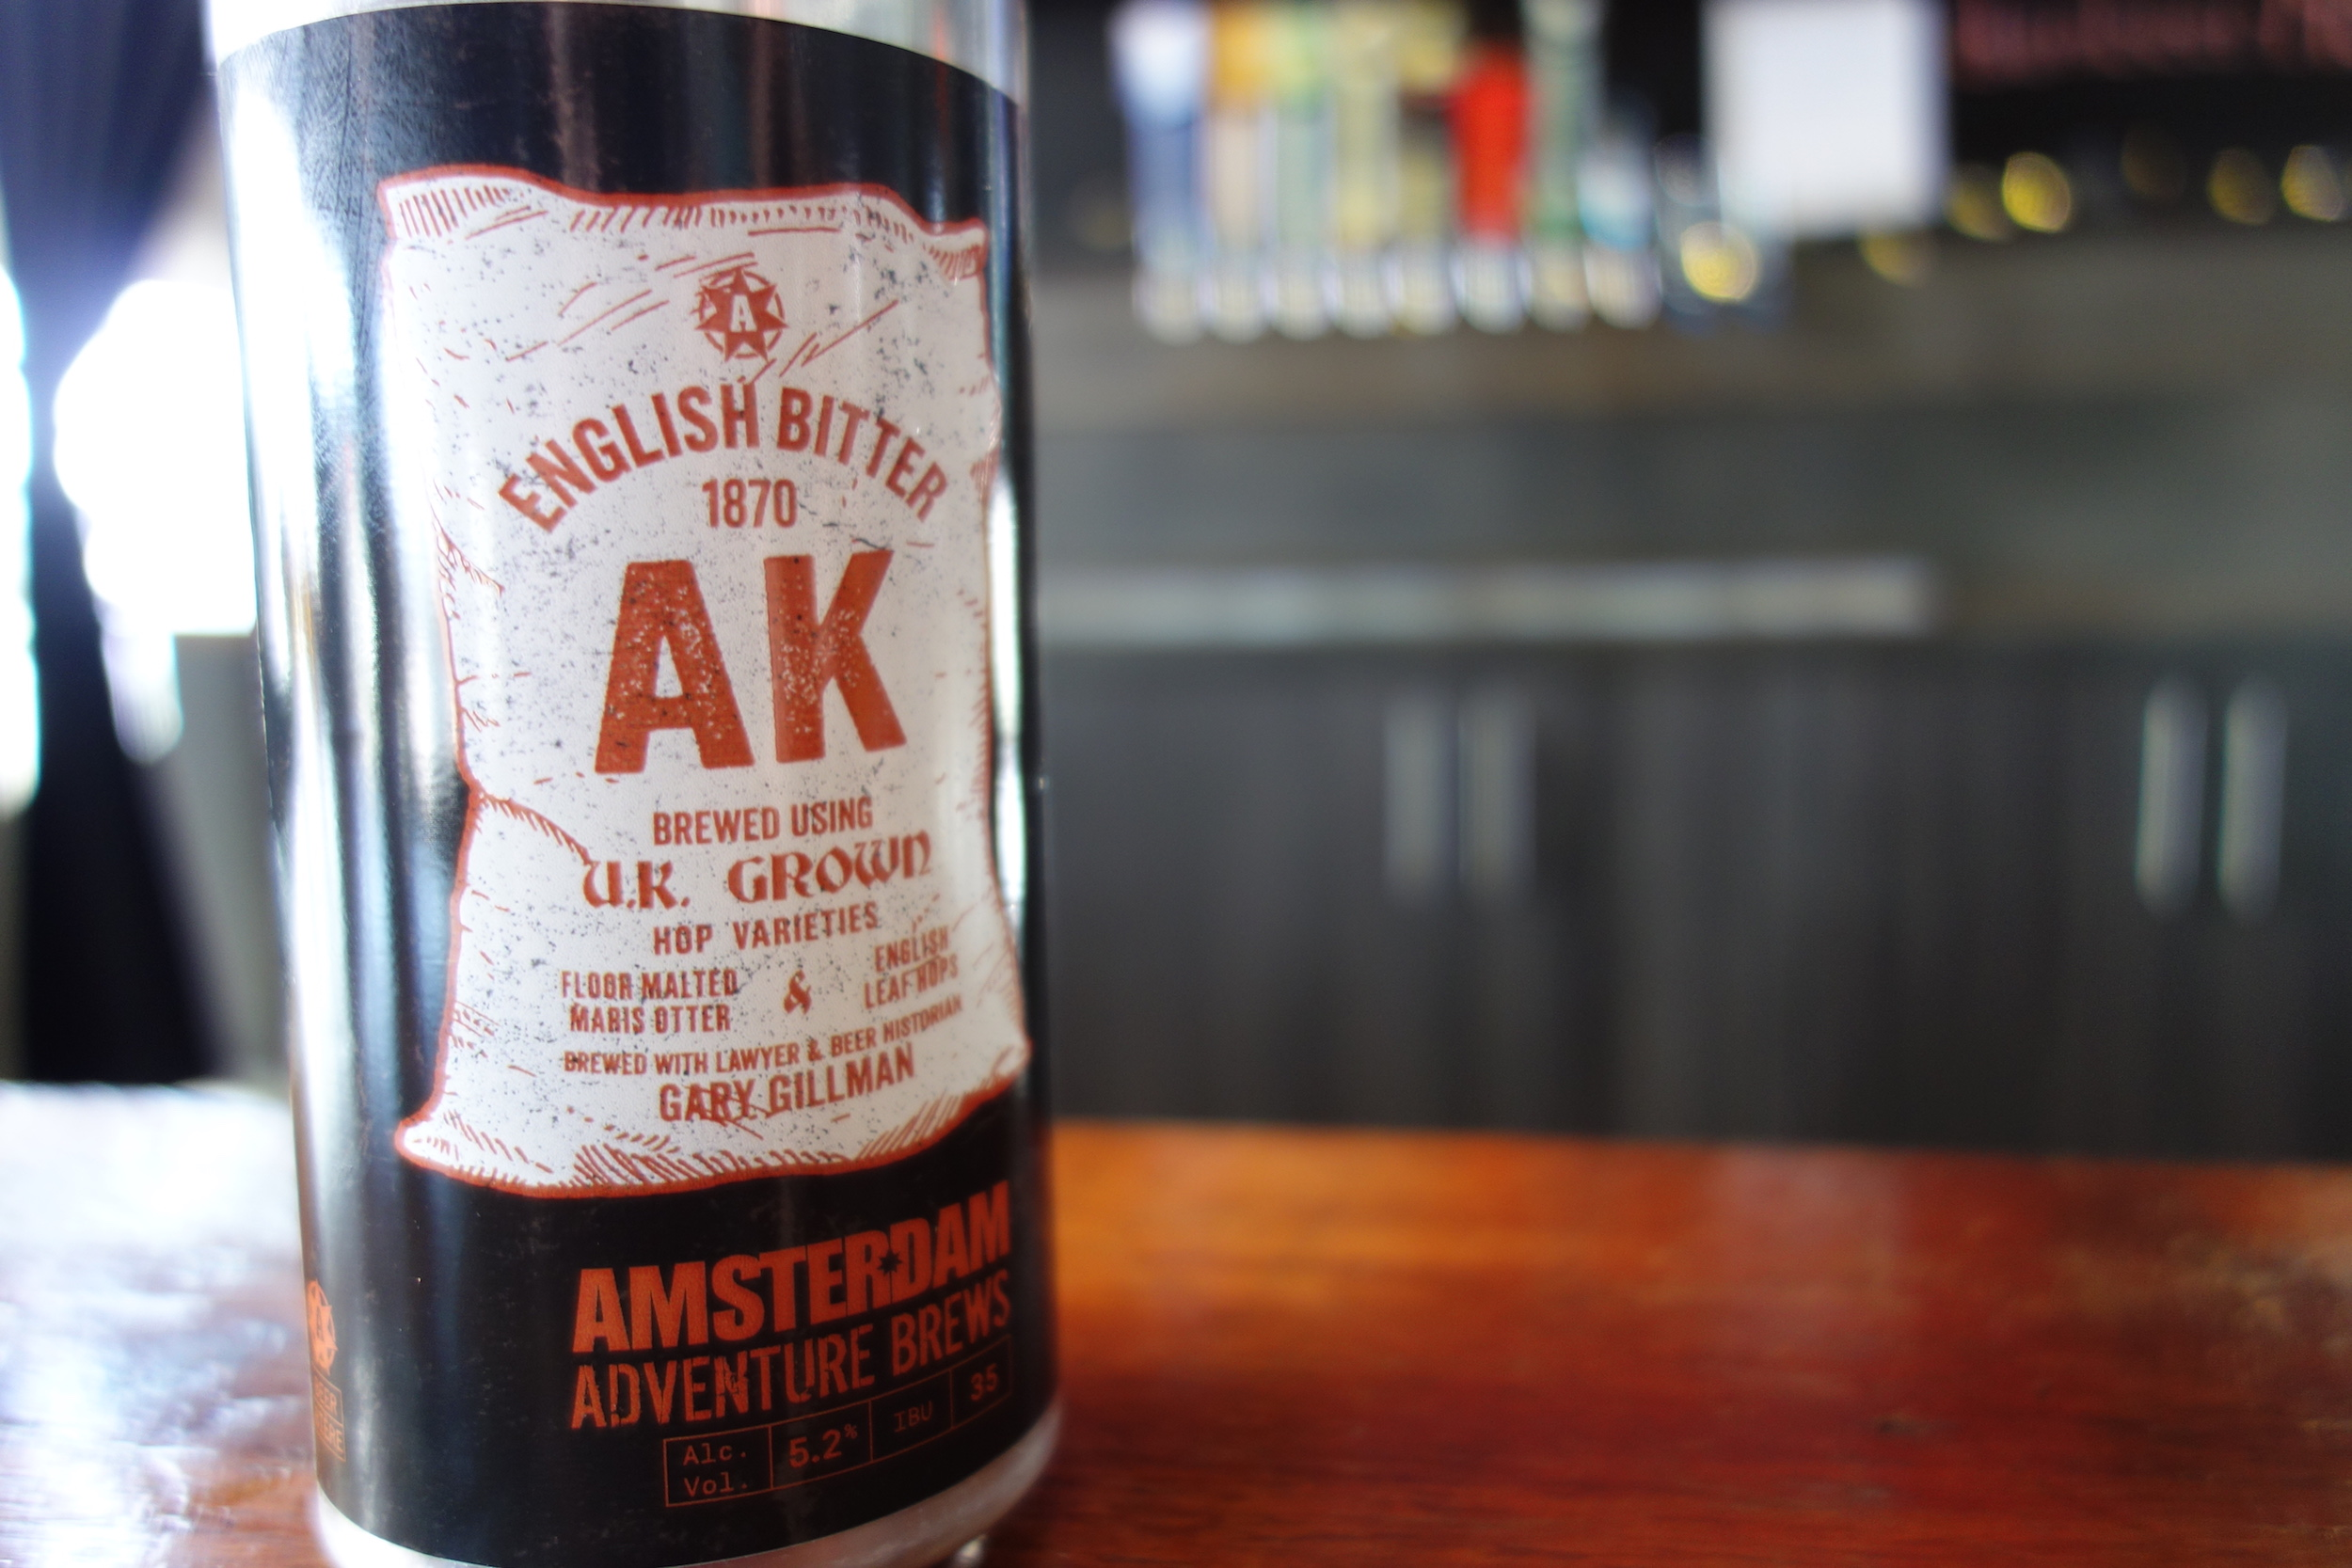 Drink like it's 1870 with Amsterdam and Gary Gillman's AK